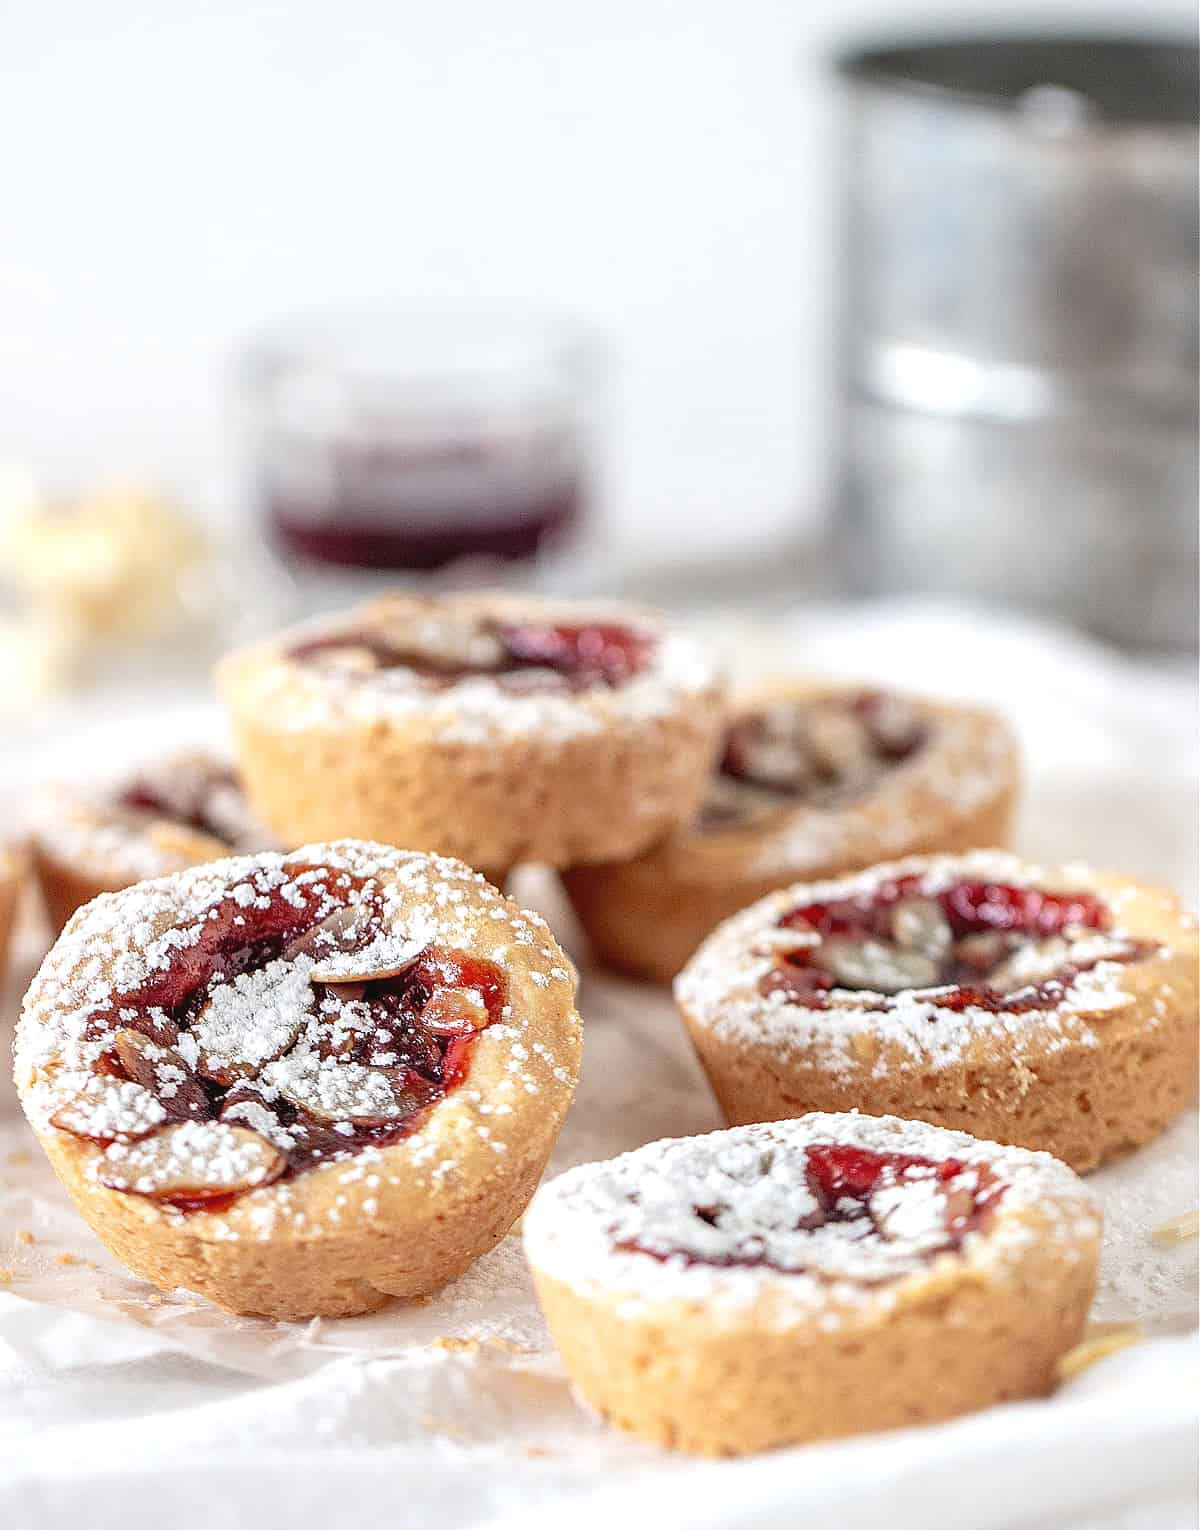 Jam tarts on top of a white cloth, a metal sifter and glass in background